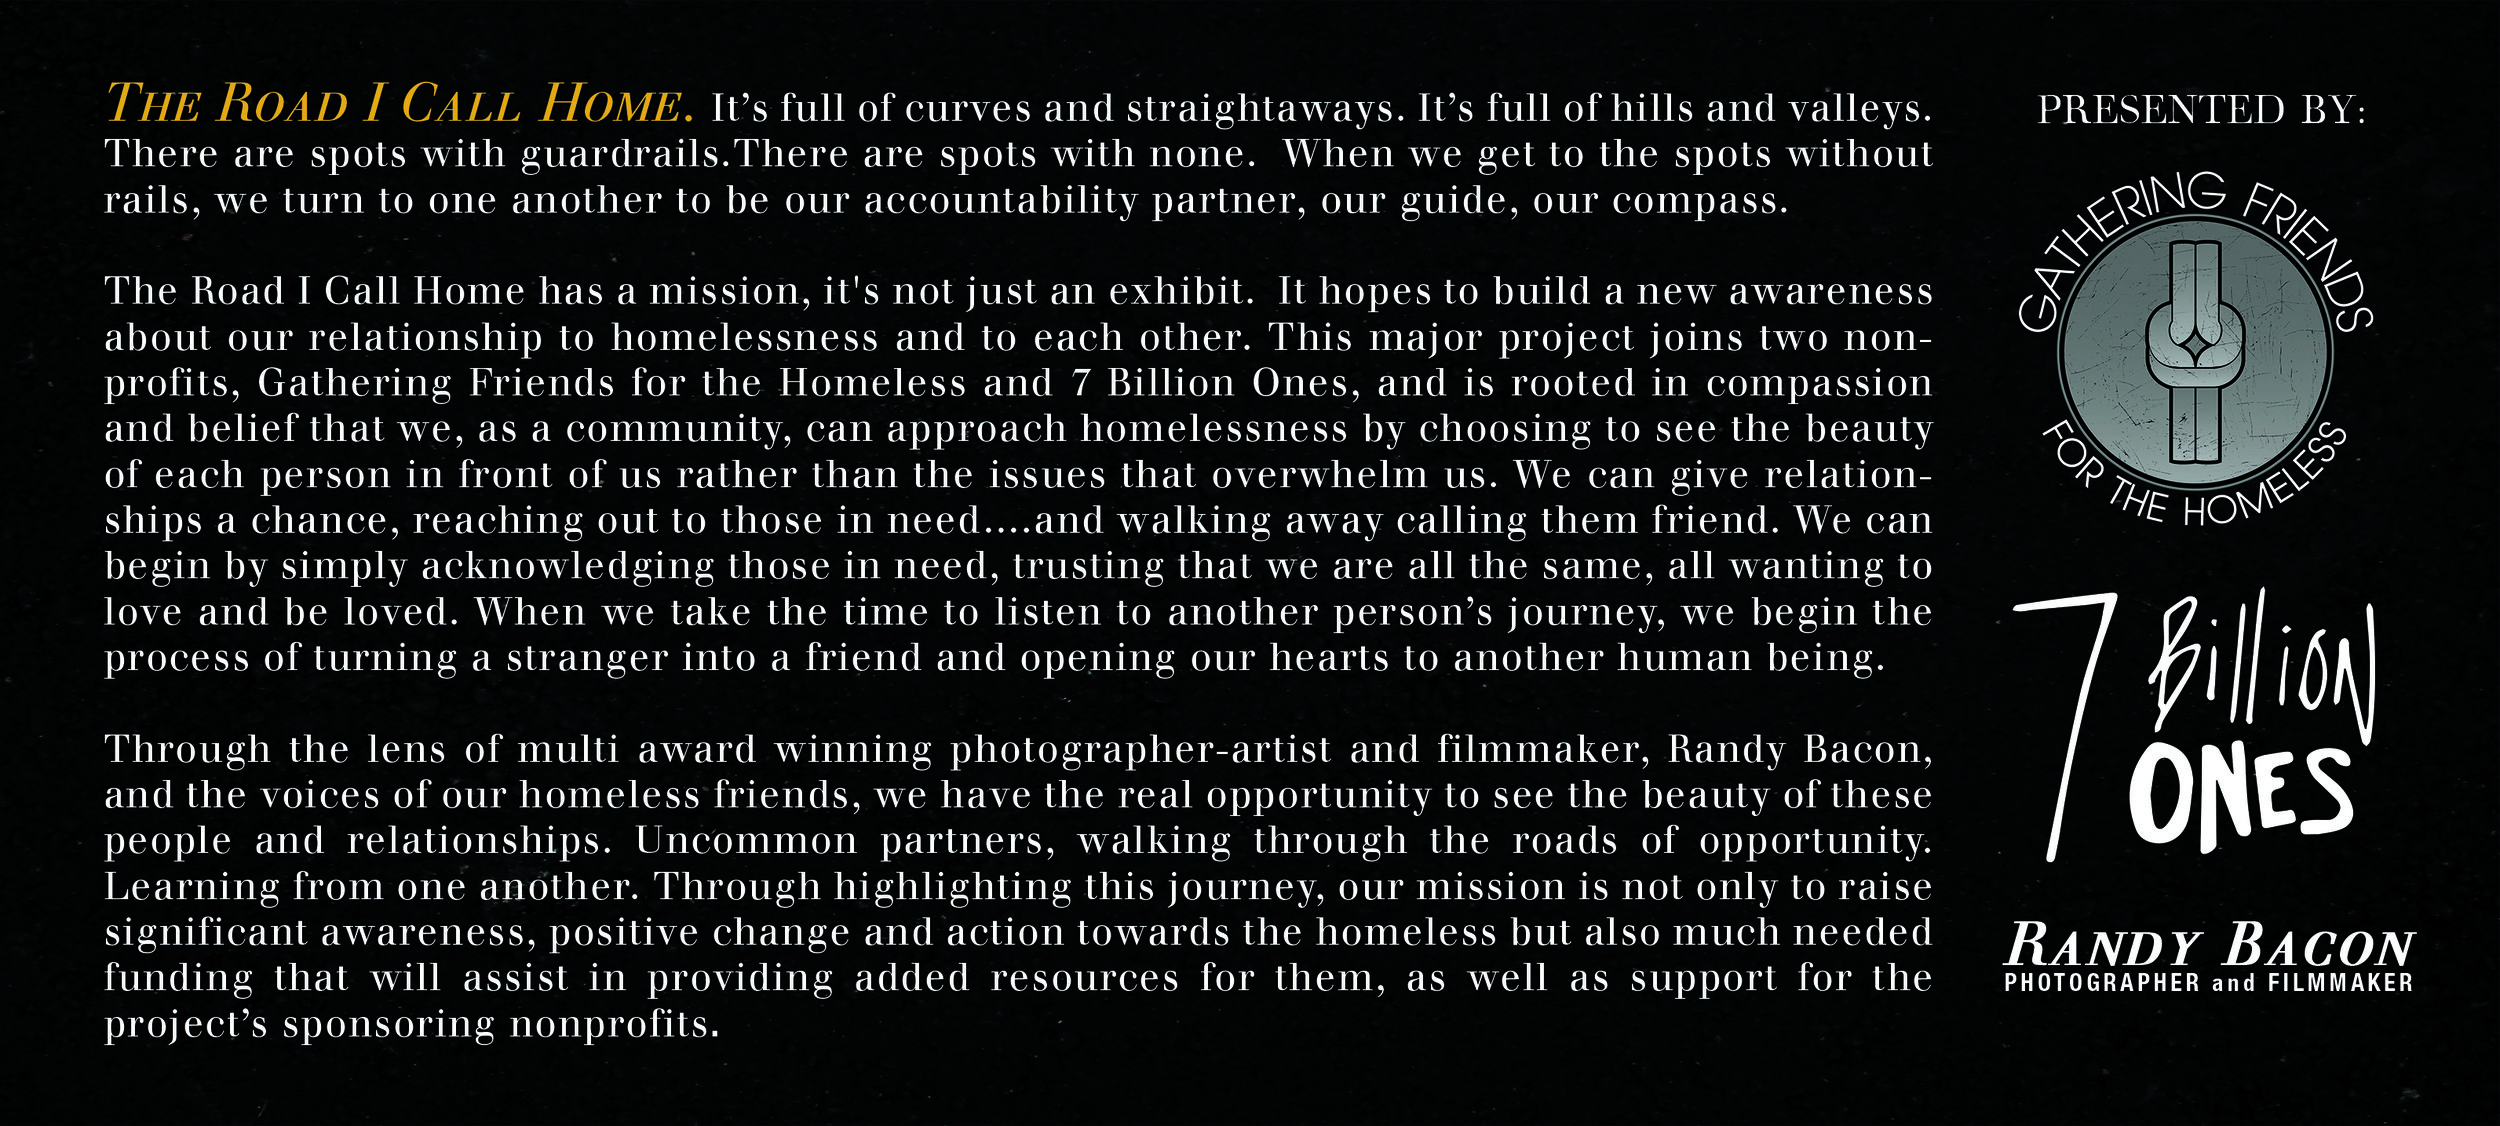 """James' story is part of the significant project """"The Road I Call Home"""" which aims to bring new awareness, action, resources and love to the many, many special homeless people that call the road their home. It features over 45 individuals and includes an art exhibition of portraits, written stories, short-films and a planned future release of a corresponding coffee table art book. The project is in partnership with Gathering Friends for the Homeless."""